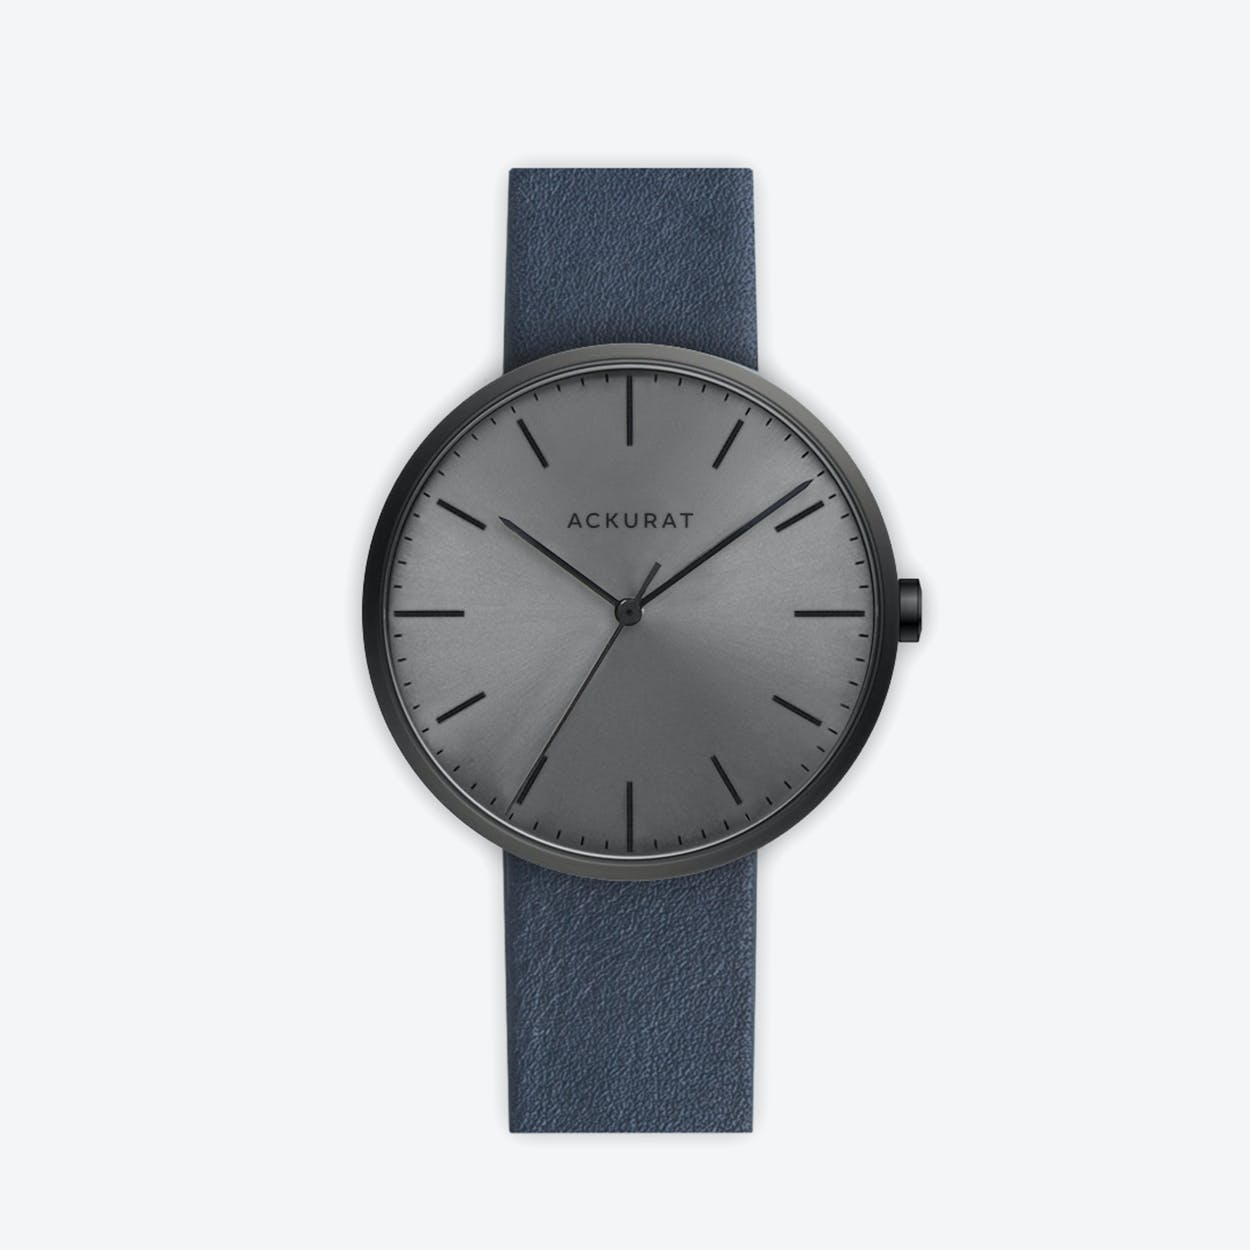 M38 PVD Black with Black Dial and Blue Leather Strap